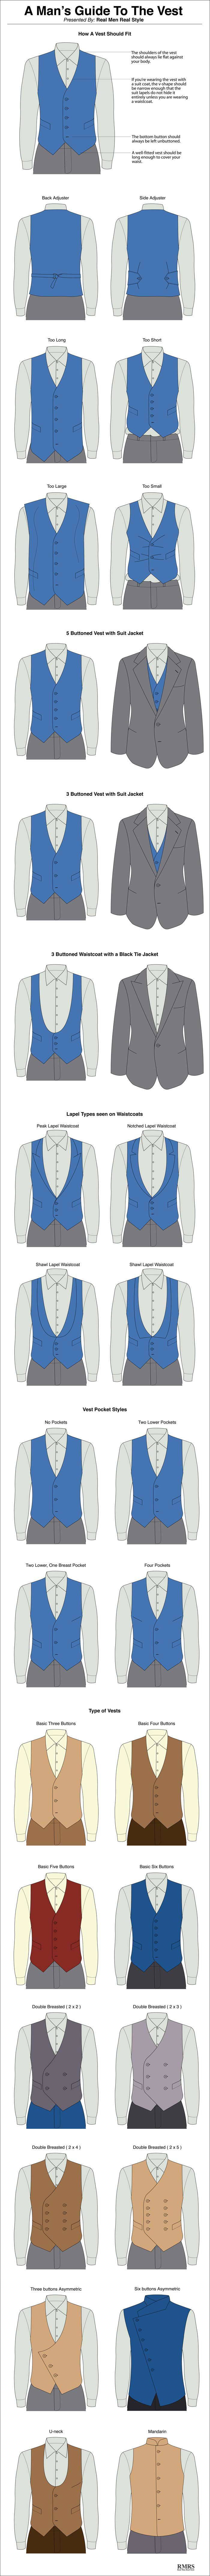 Men's Vests?  Men's Waistcoats?  Single or double breasted vests?  3 buttons, 5 buttons, 12 buttons?  Notch, peak, or shawl lapels on a vest?  OK - a lot of questions here........  Not to worry!  I have all the answers and then some in this article on waistcoats and vests :)     Be